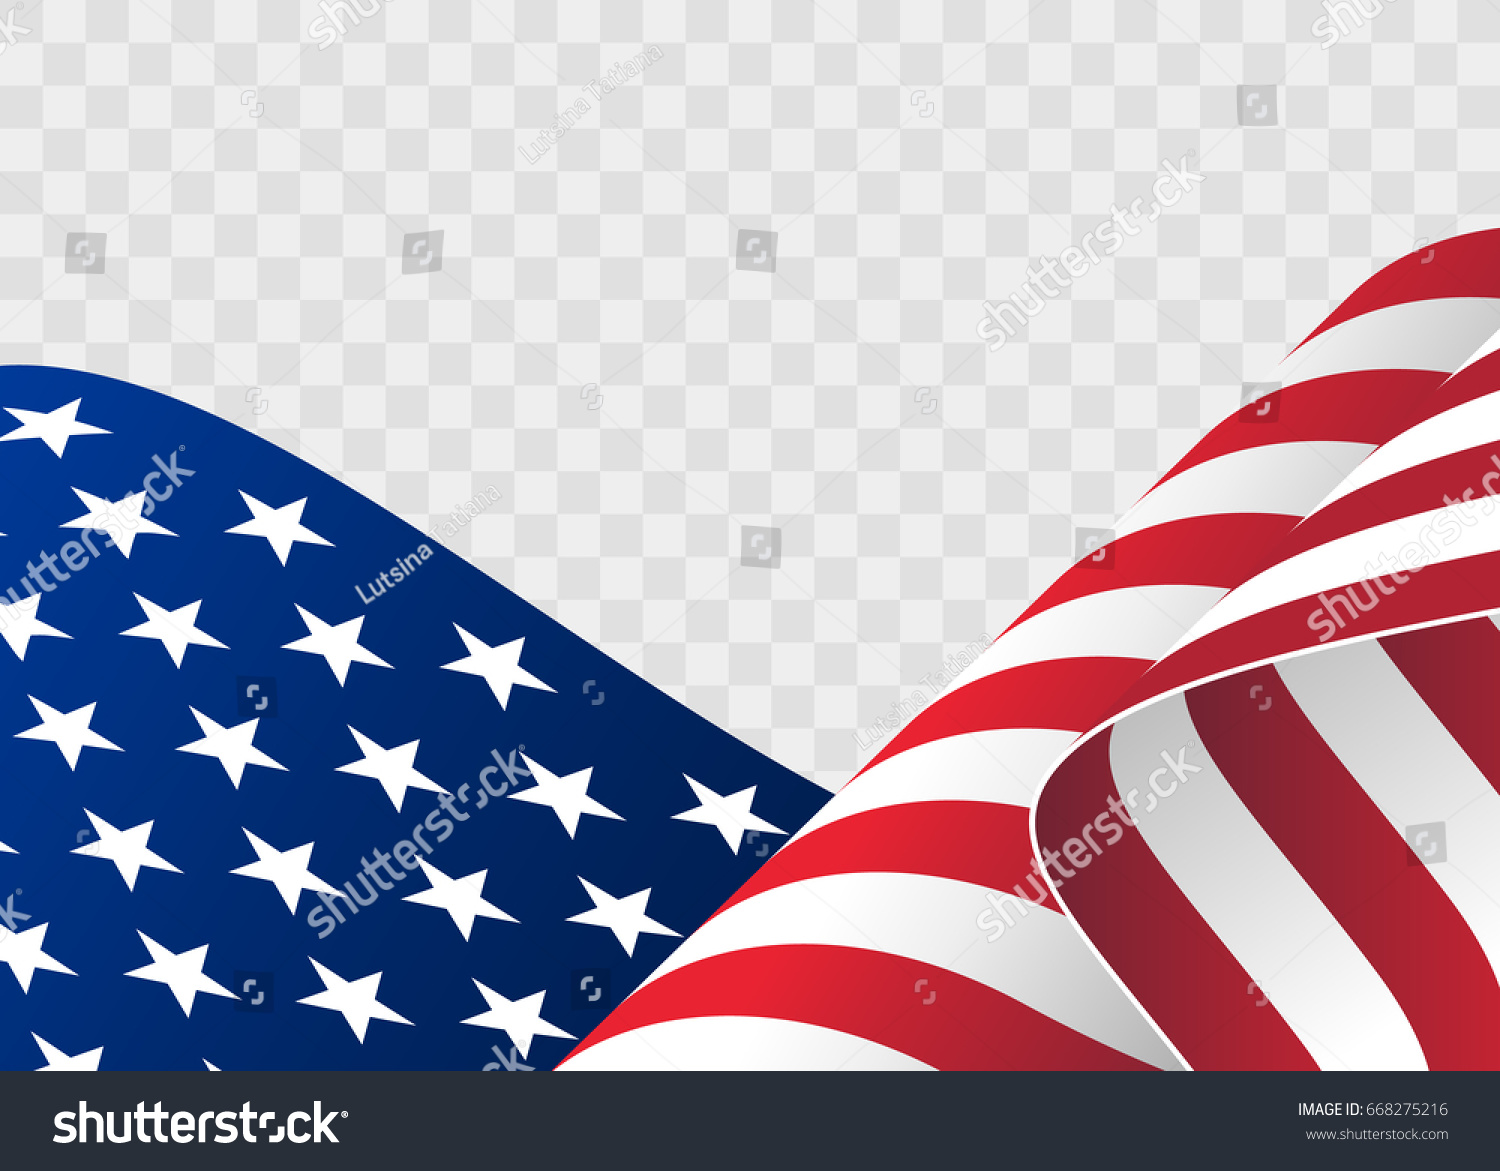 Waving flag of the United States. illustration of wavy American Flag for Independence Day. American flag on transparent background vector illustration. US, USA, banner. #668275216